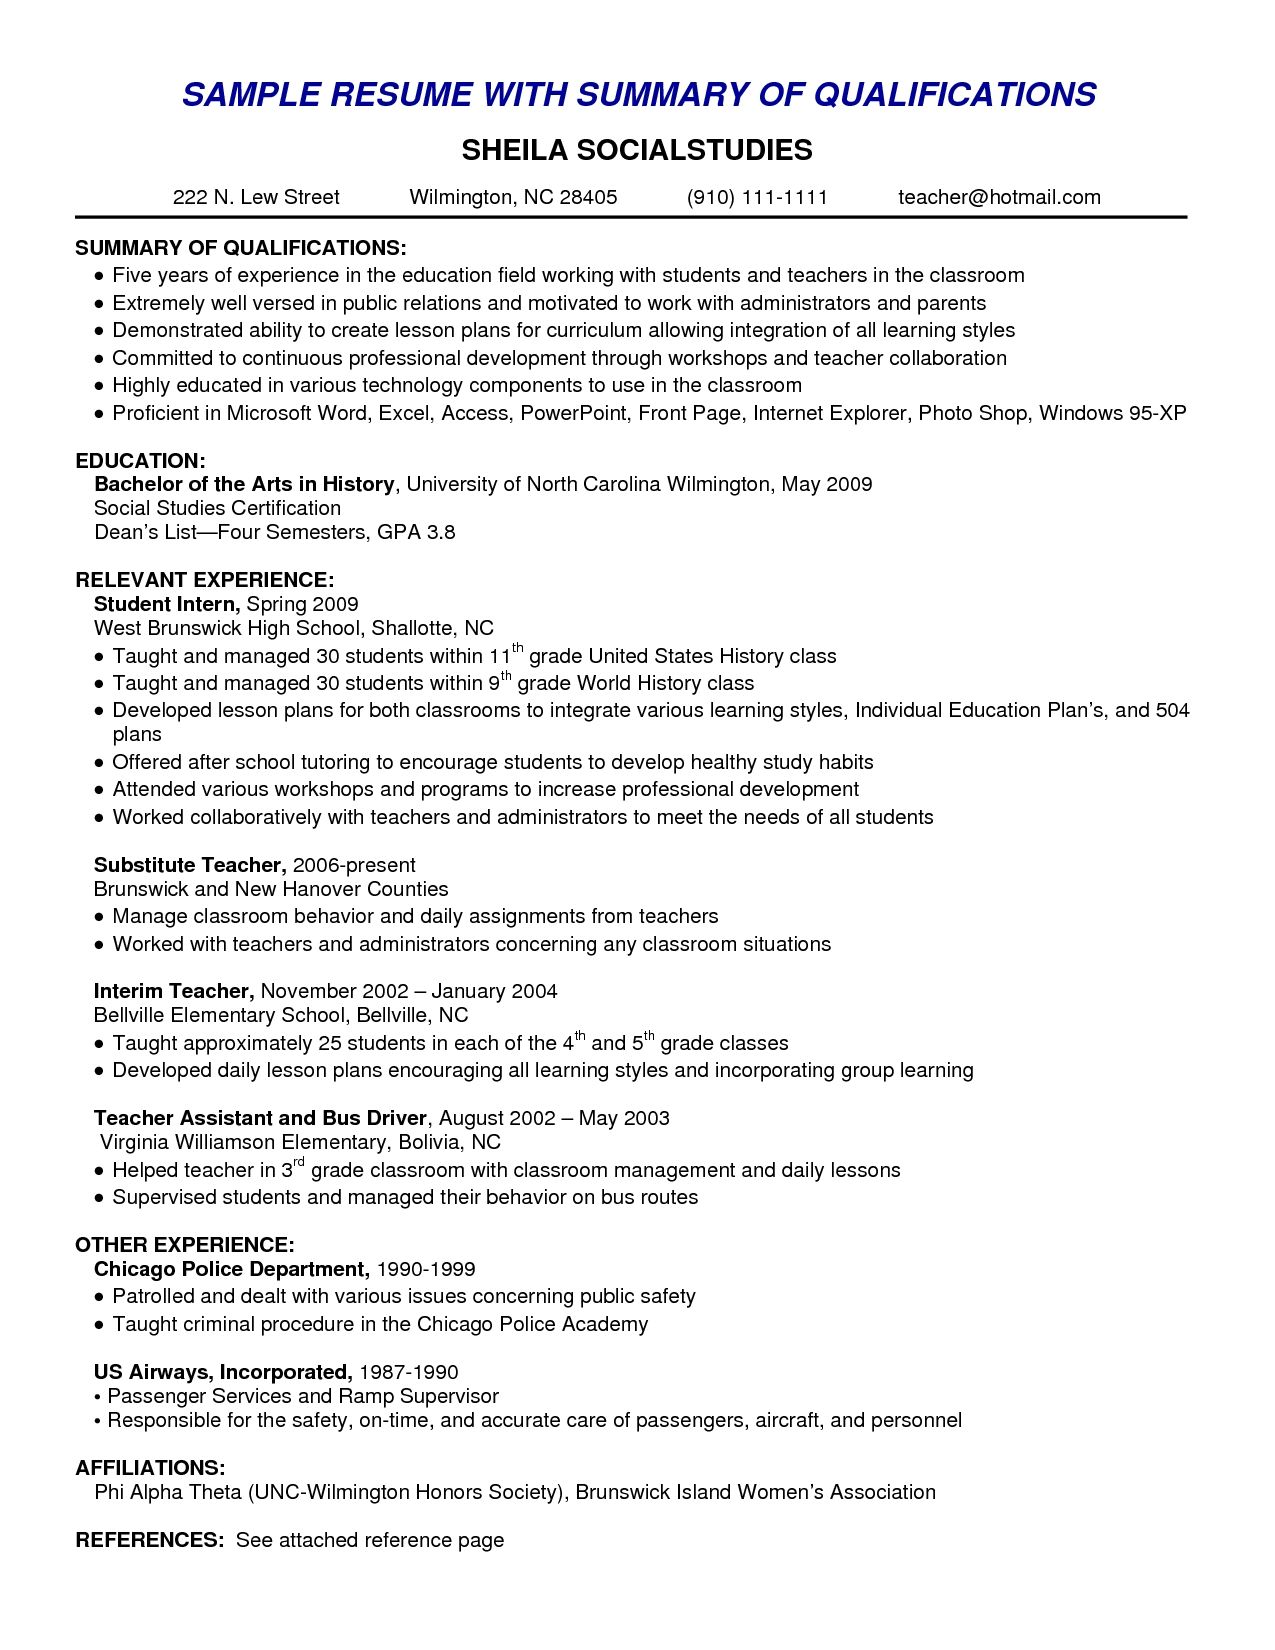 Resumes Examples Resume Skills Summary Examples Example Of Skills Summary For